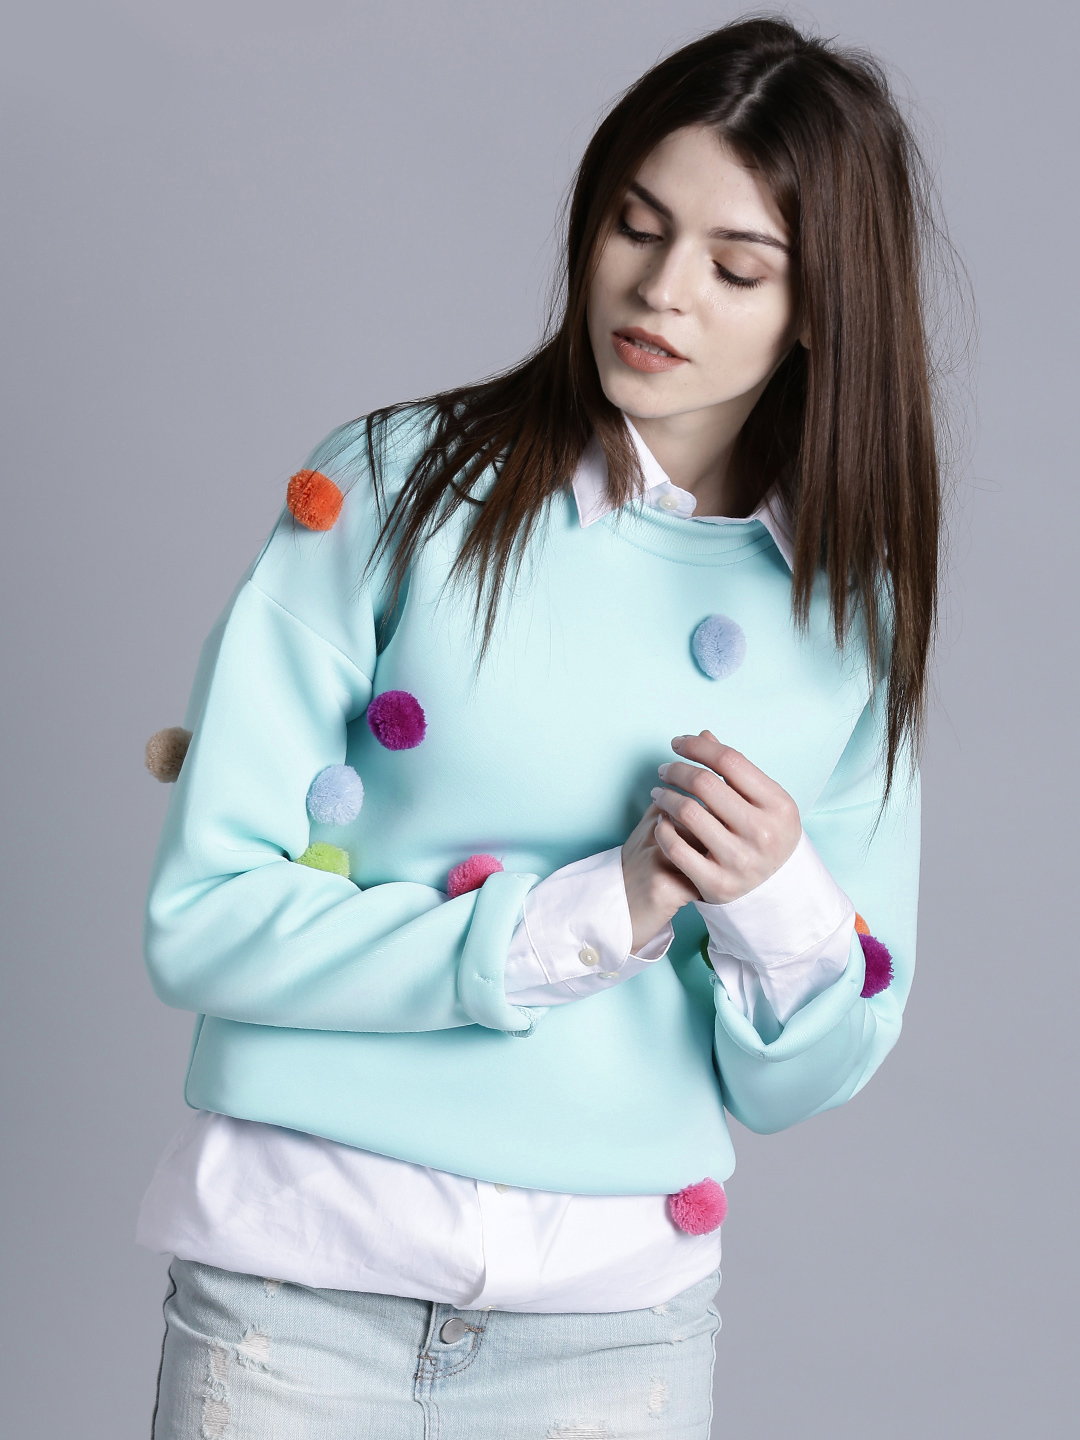 8-kook-n-keech-sweater-valentines-day-ideas-not-red-pink